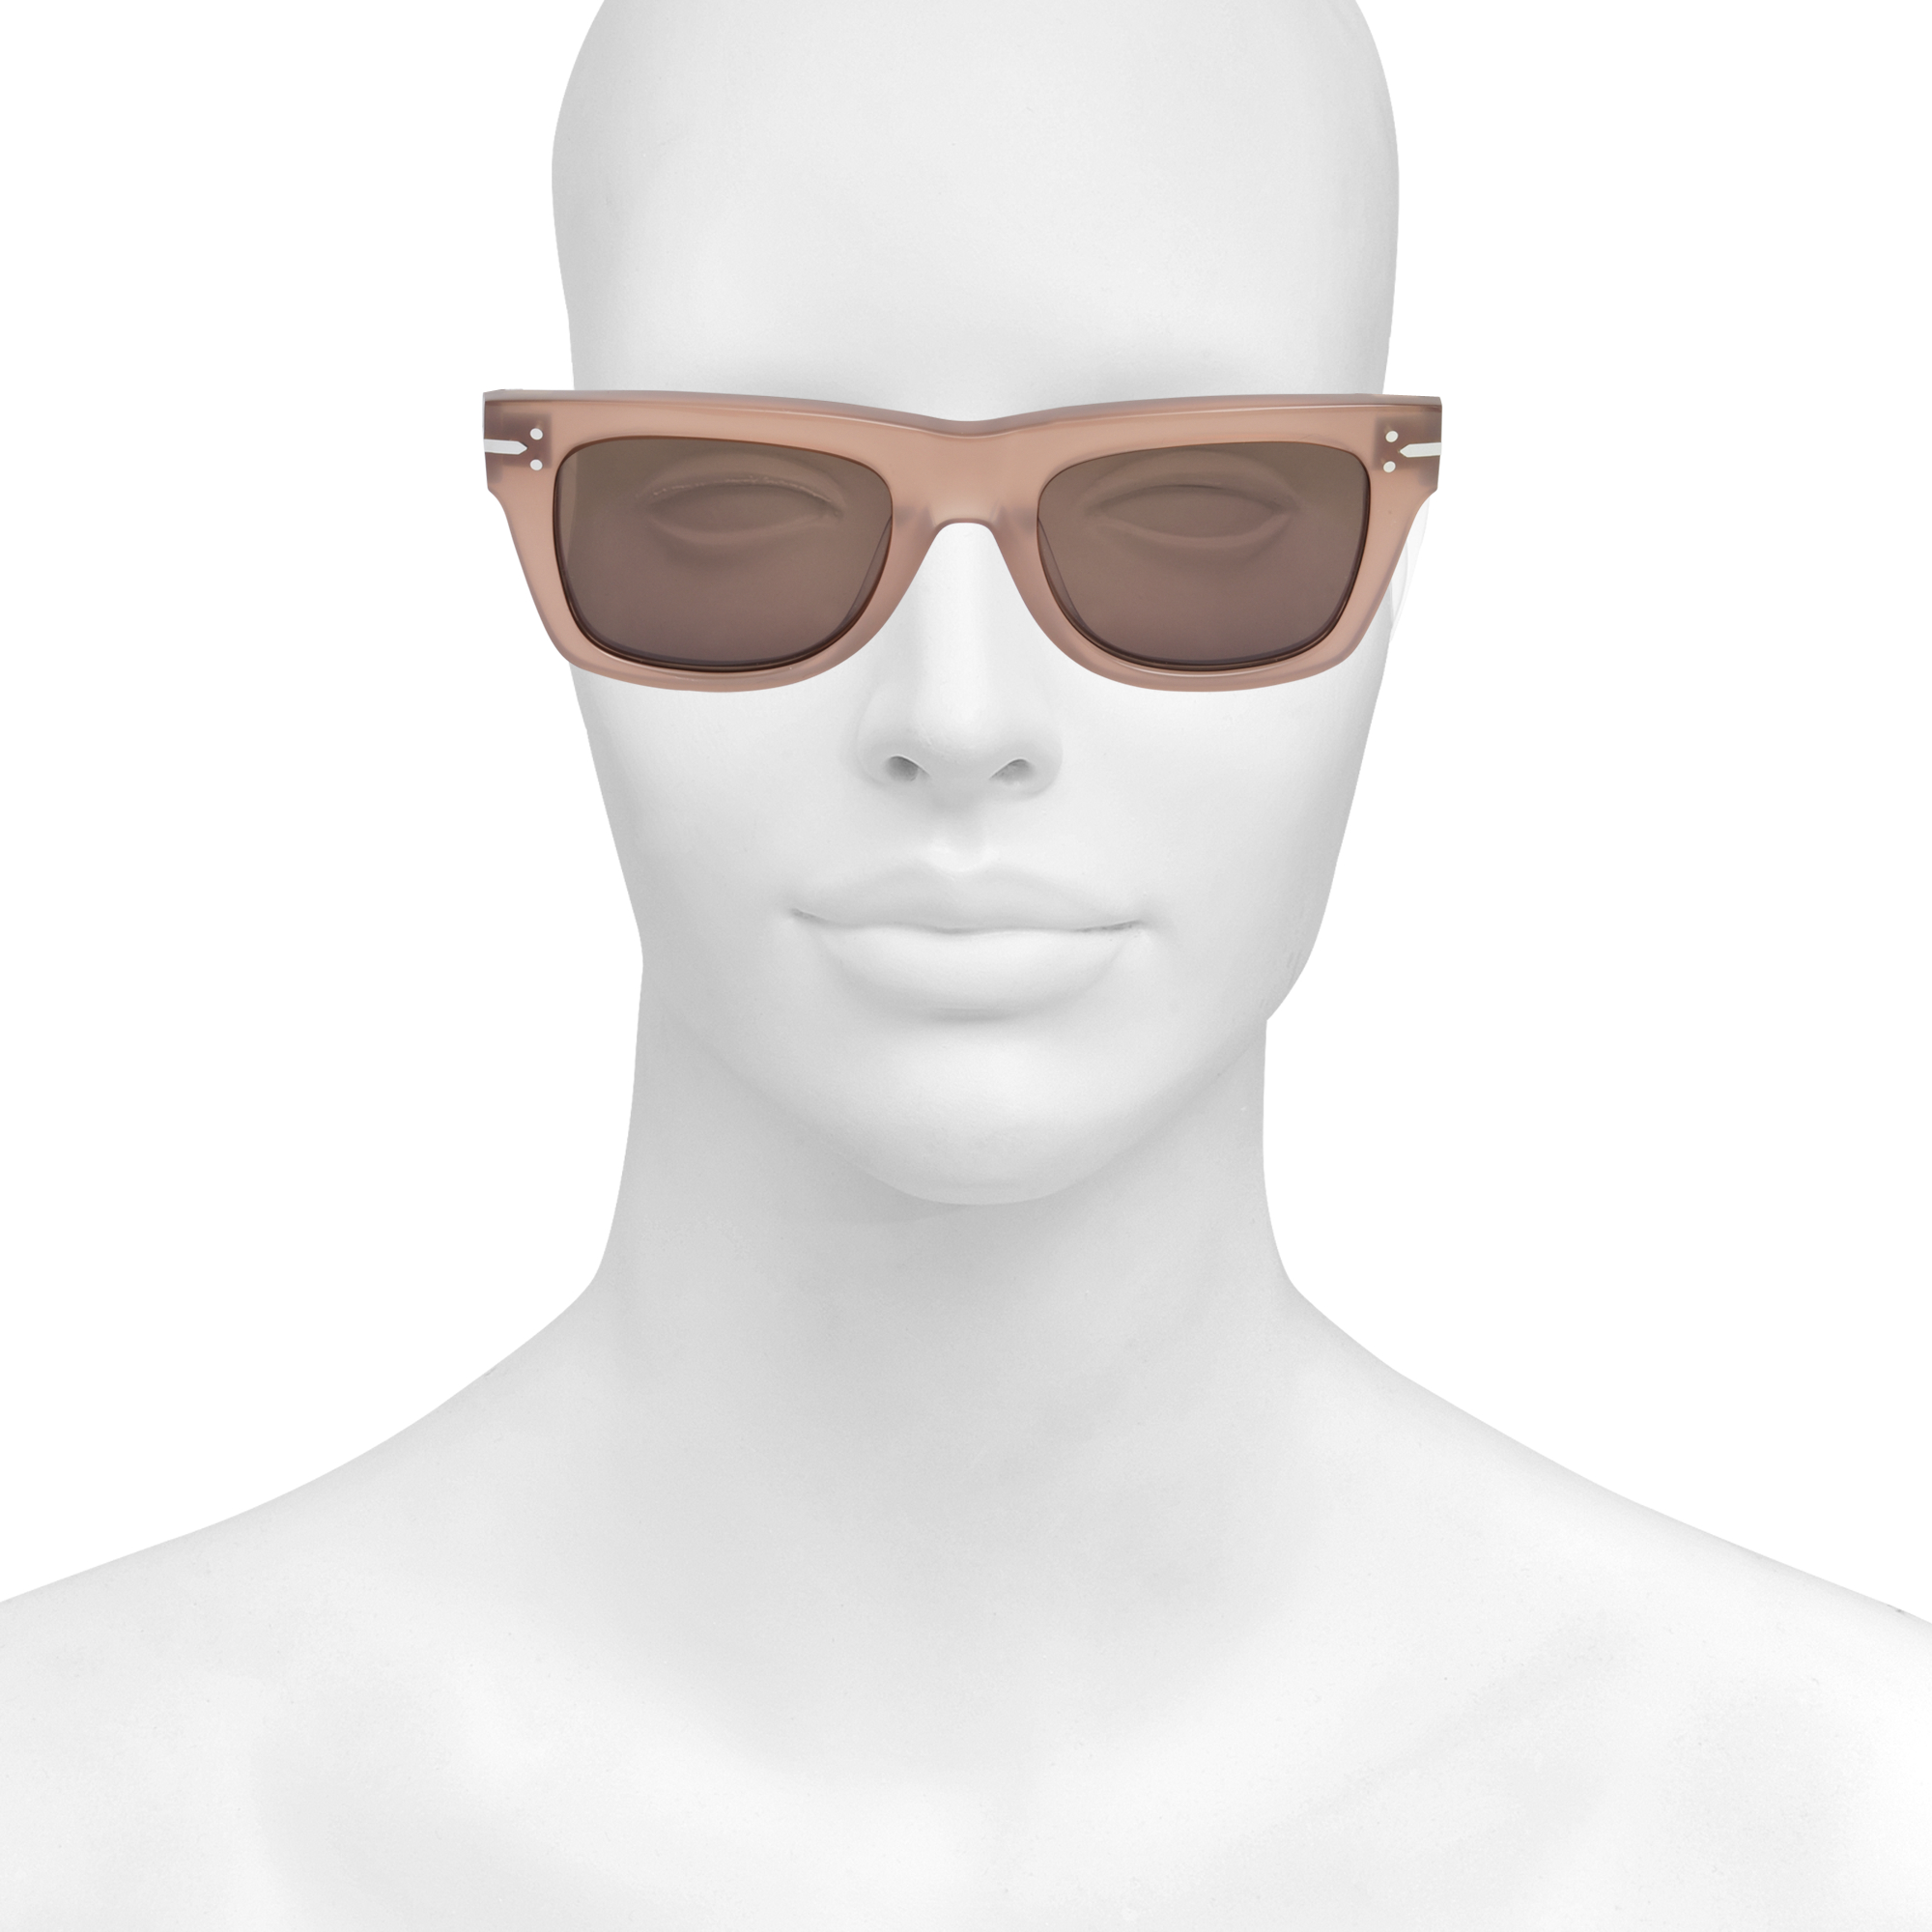 Celine Cl S Sunglasses in Taupe (Pink)